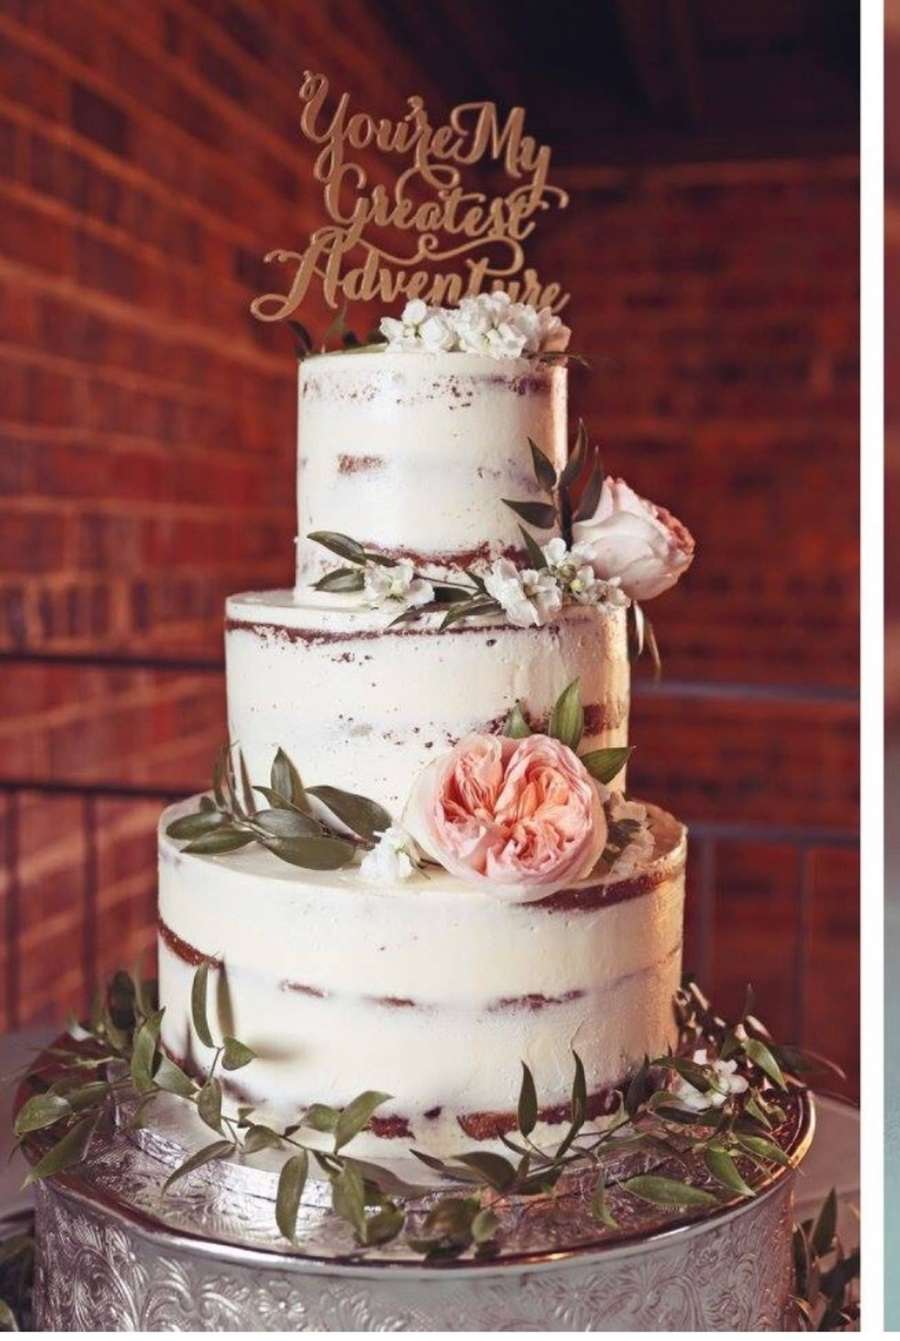 Naked Birch 3Tier Wedding Cake - Cakecentralcom-7620